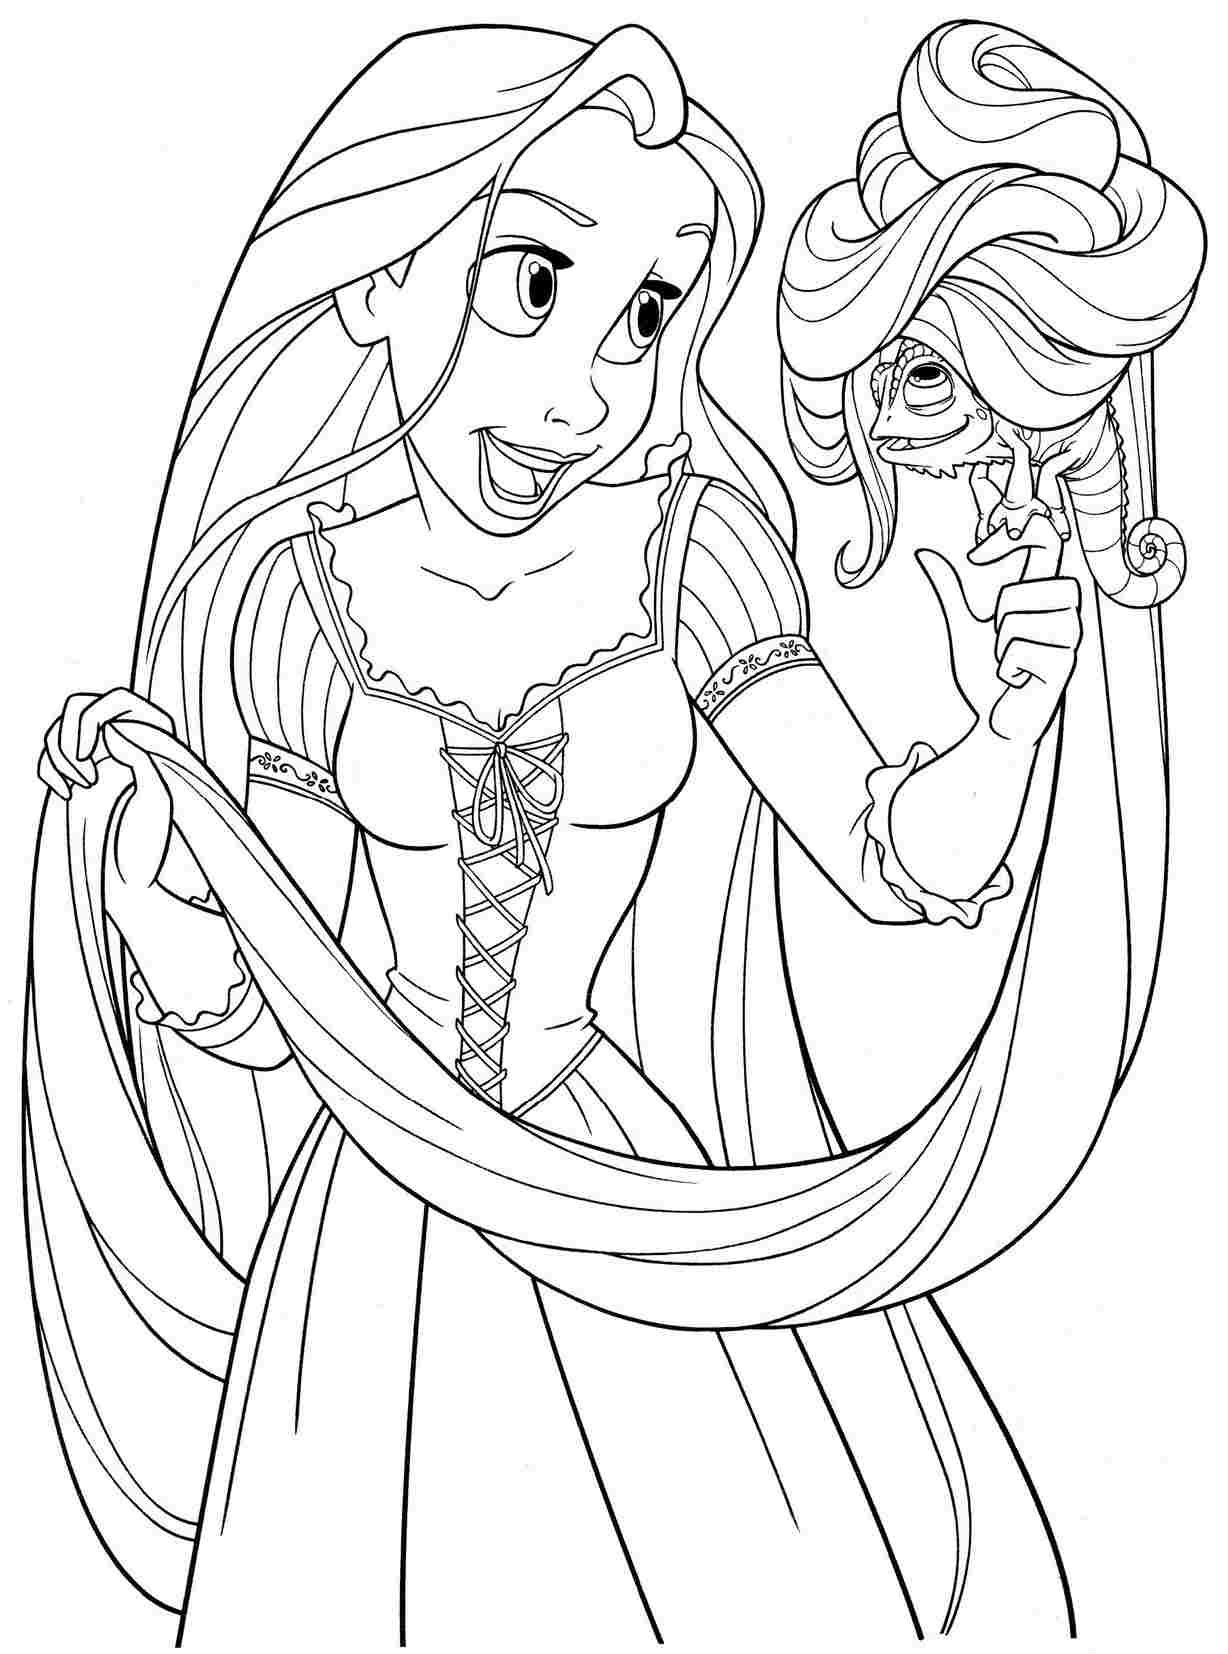 disney princess coloring pages disney princess rapunzel online coloring kids coloring coloring book free colouring pages kids boys for kids